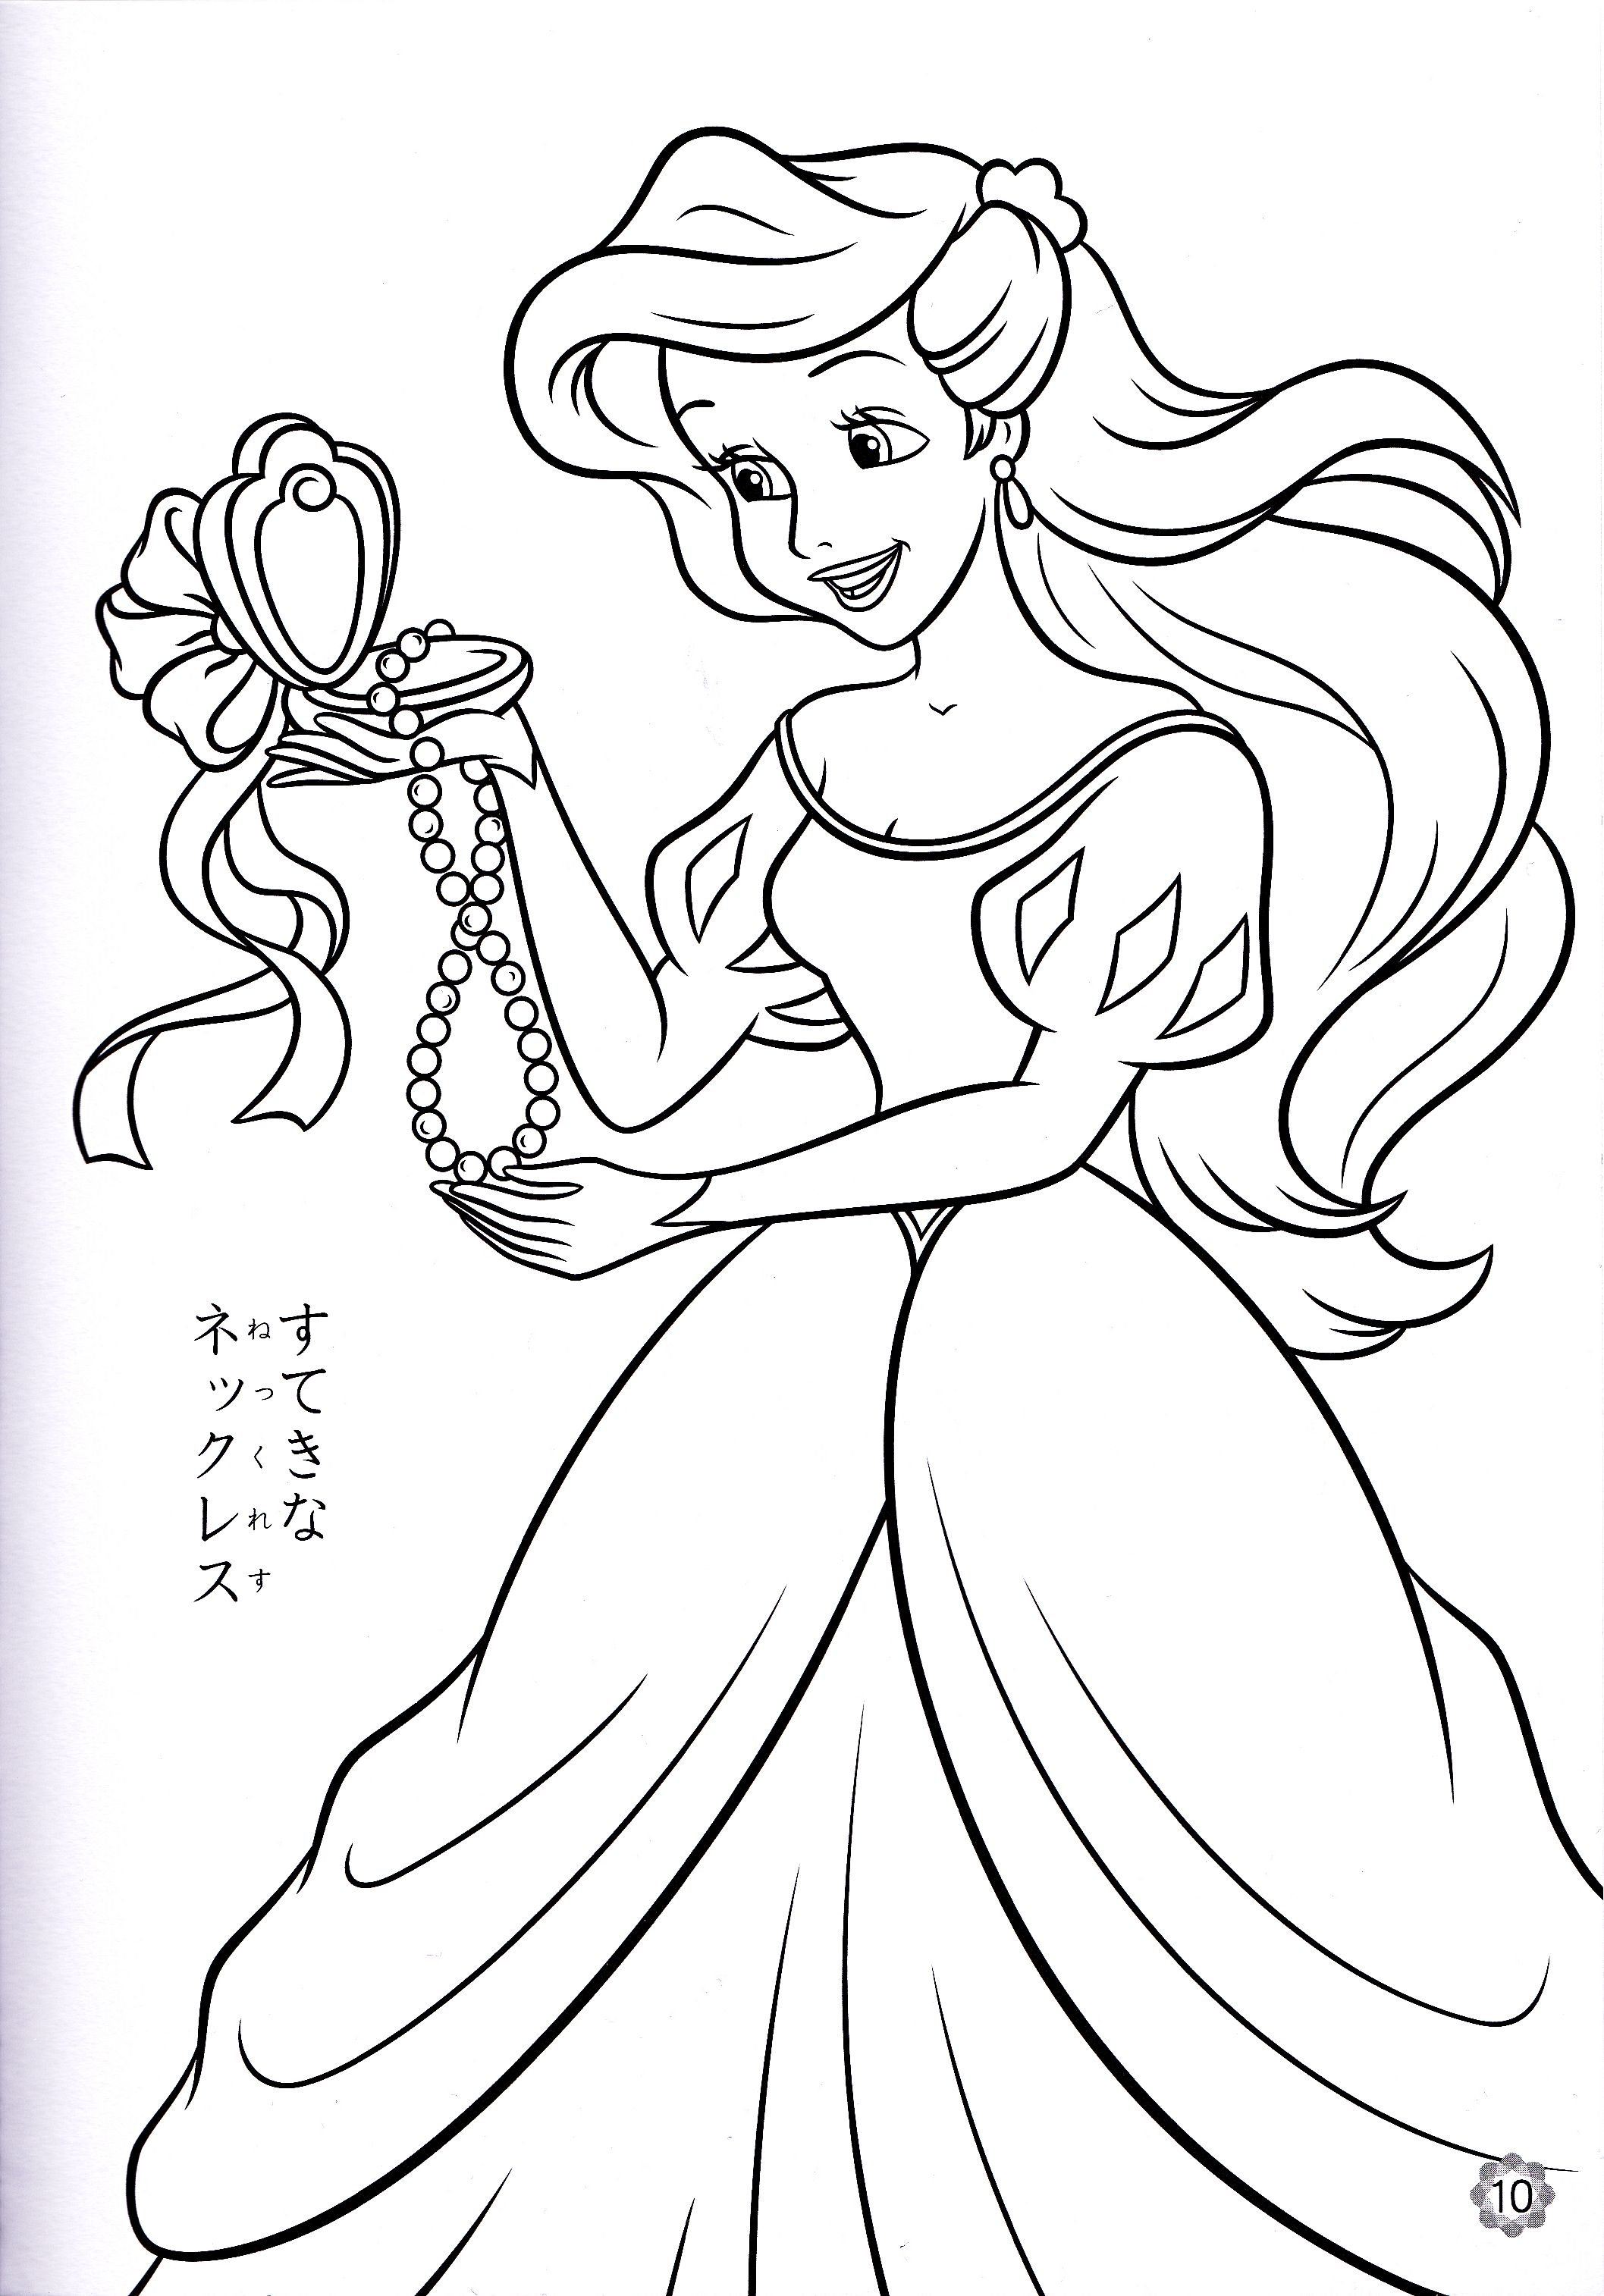 Disney Princess Ariel Coloring PagesKidsfreecoloring Net